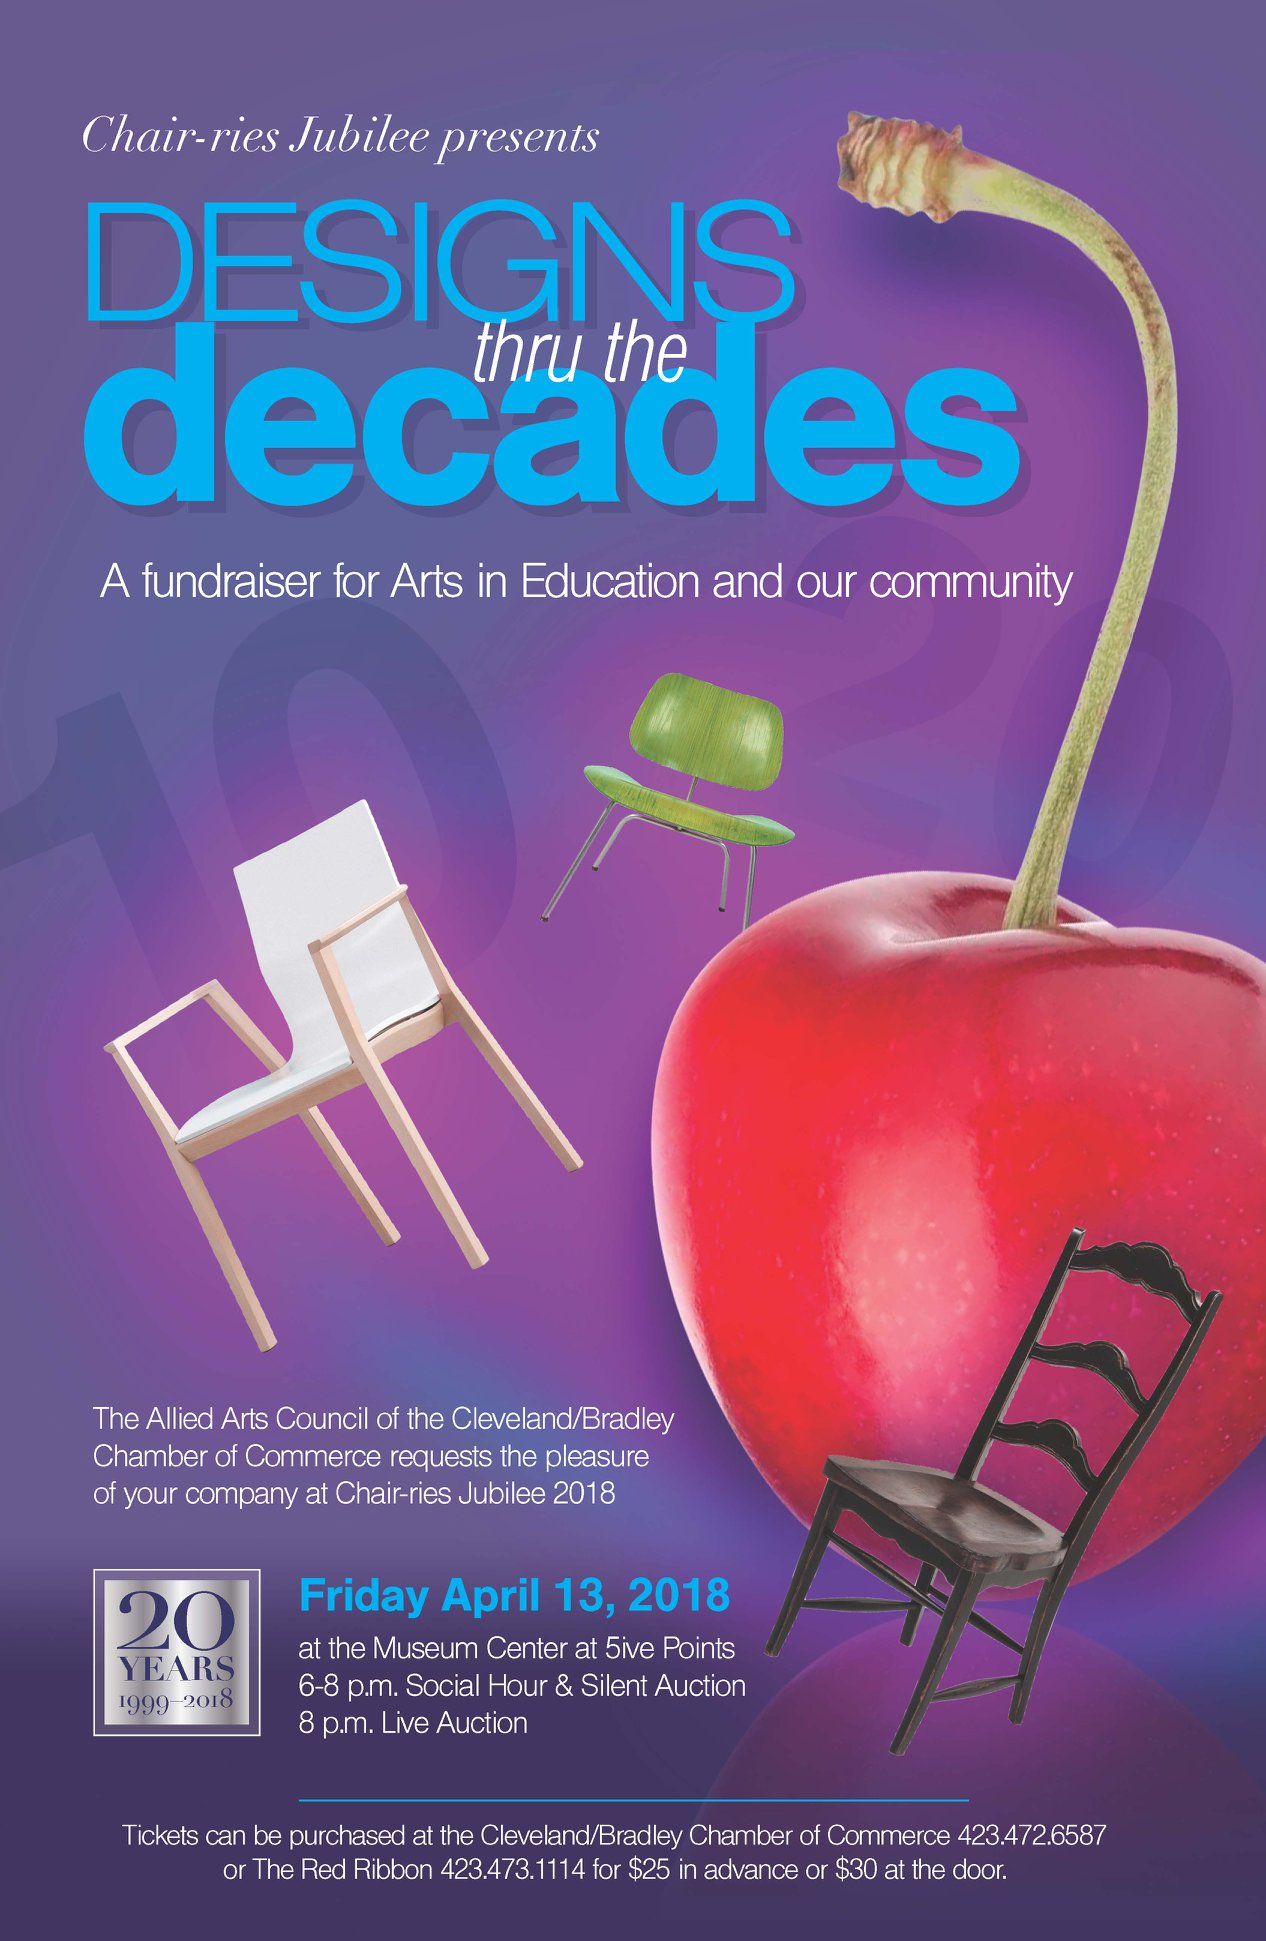 Chair Ries Jubilee 2018, U201cDesigns Thru The Decadesu201d, Will Be Friday, April  13, 2018 At The Museum Center At 5ive Points Beginning At 6:00 P.m.  Admission ...